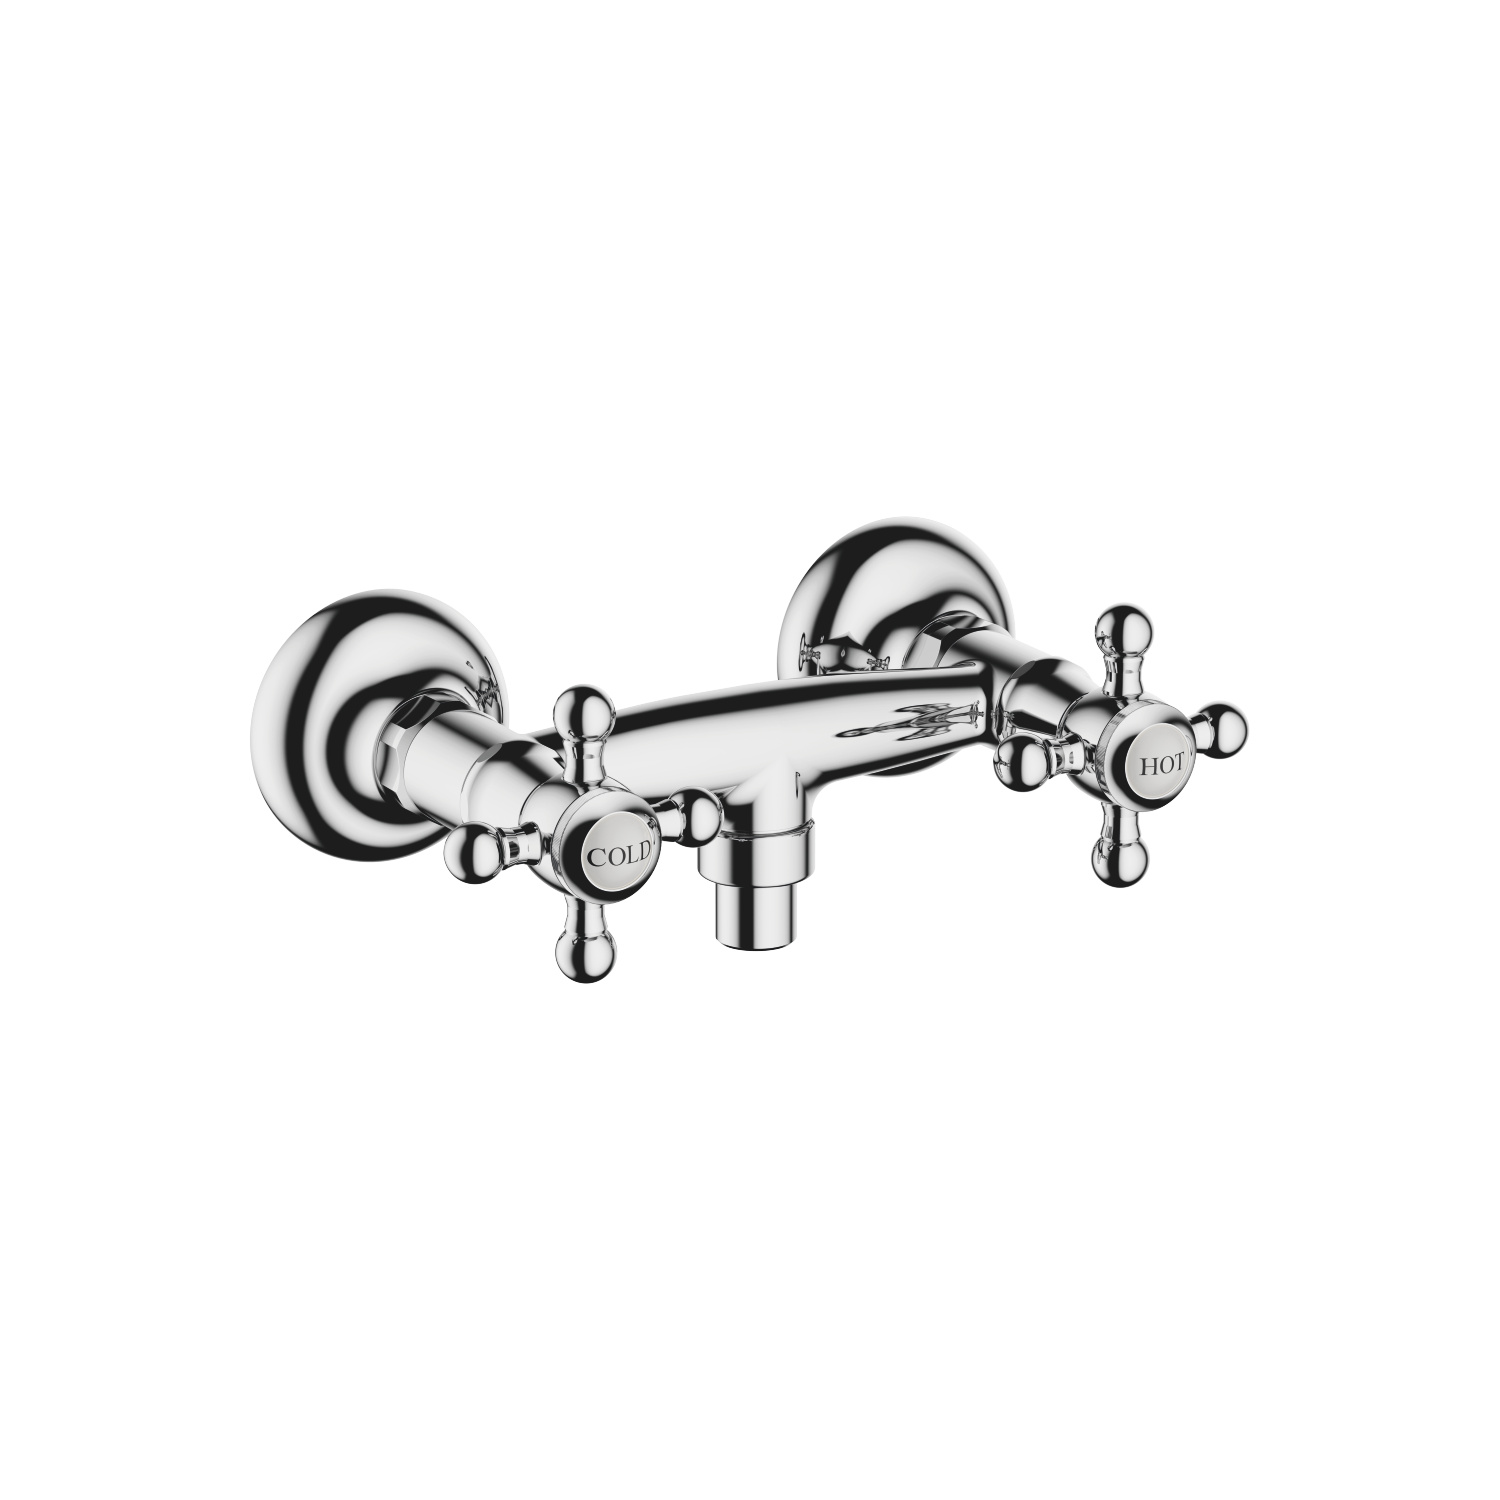 Shower mixer for wall mounting - polished chrome